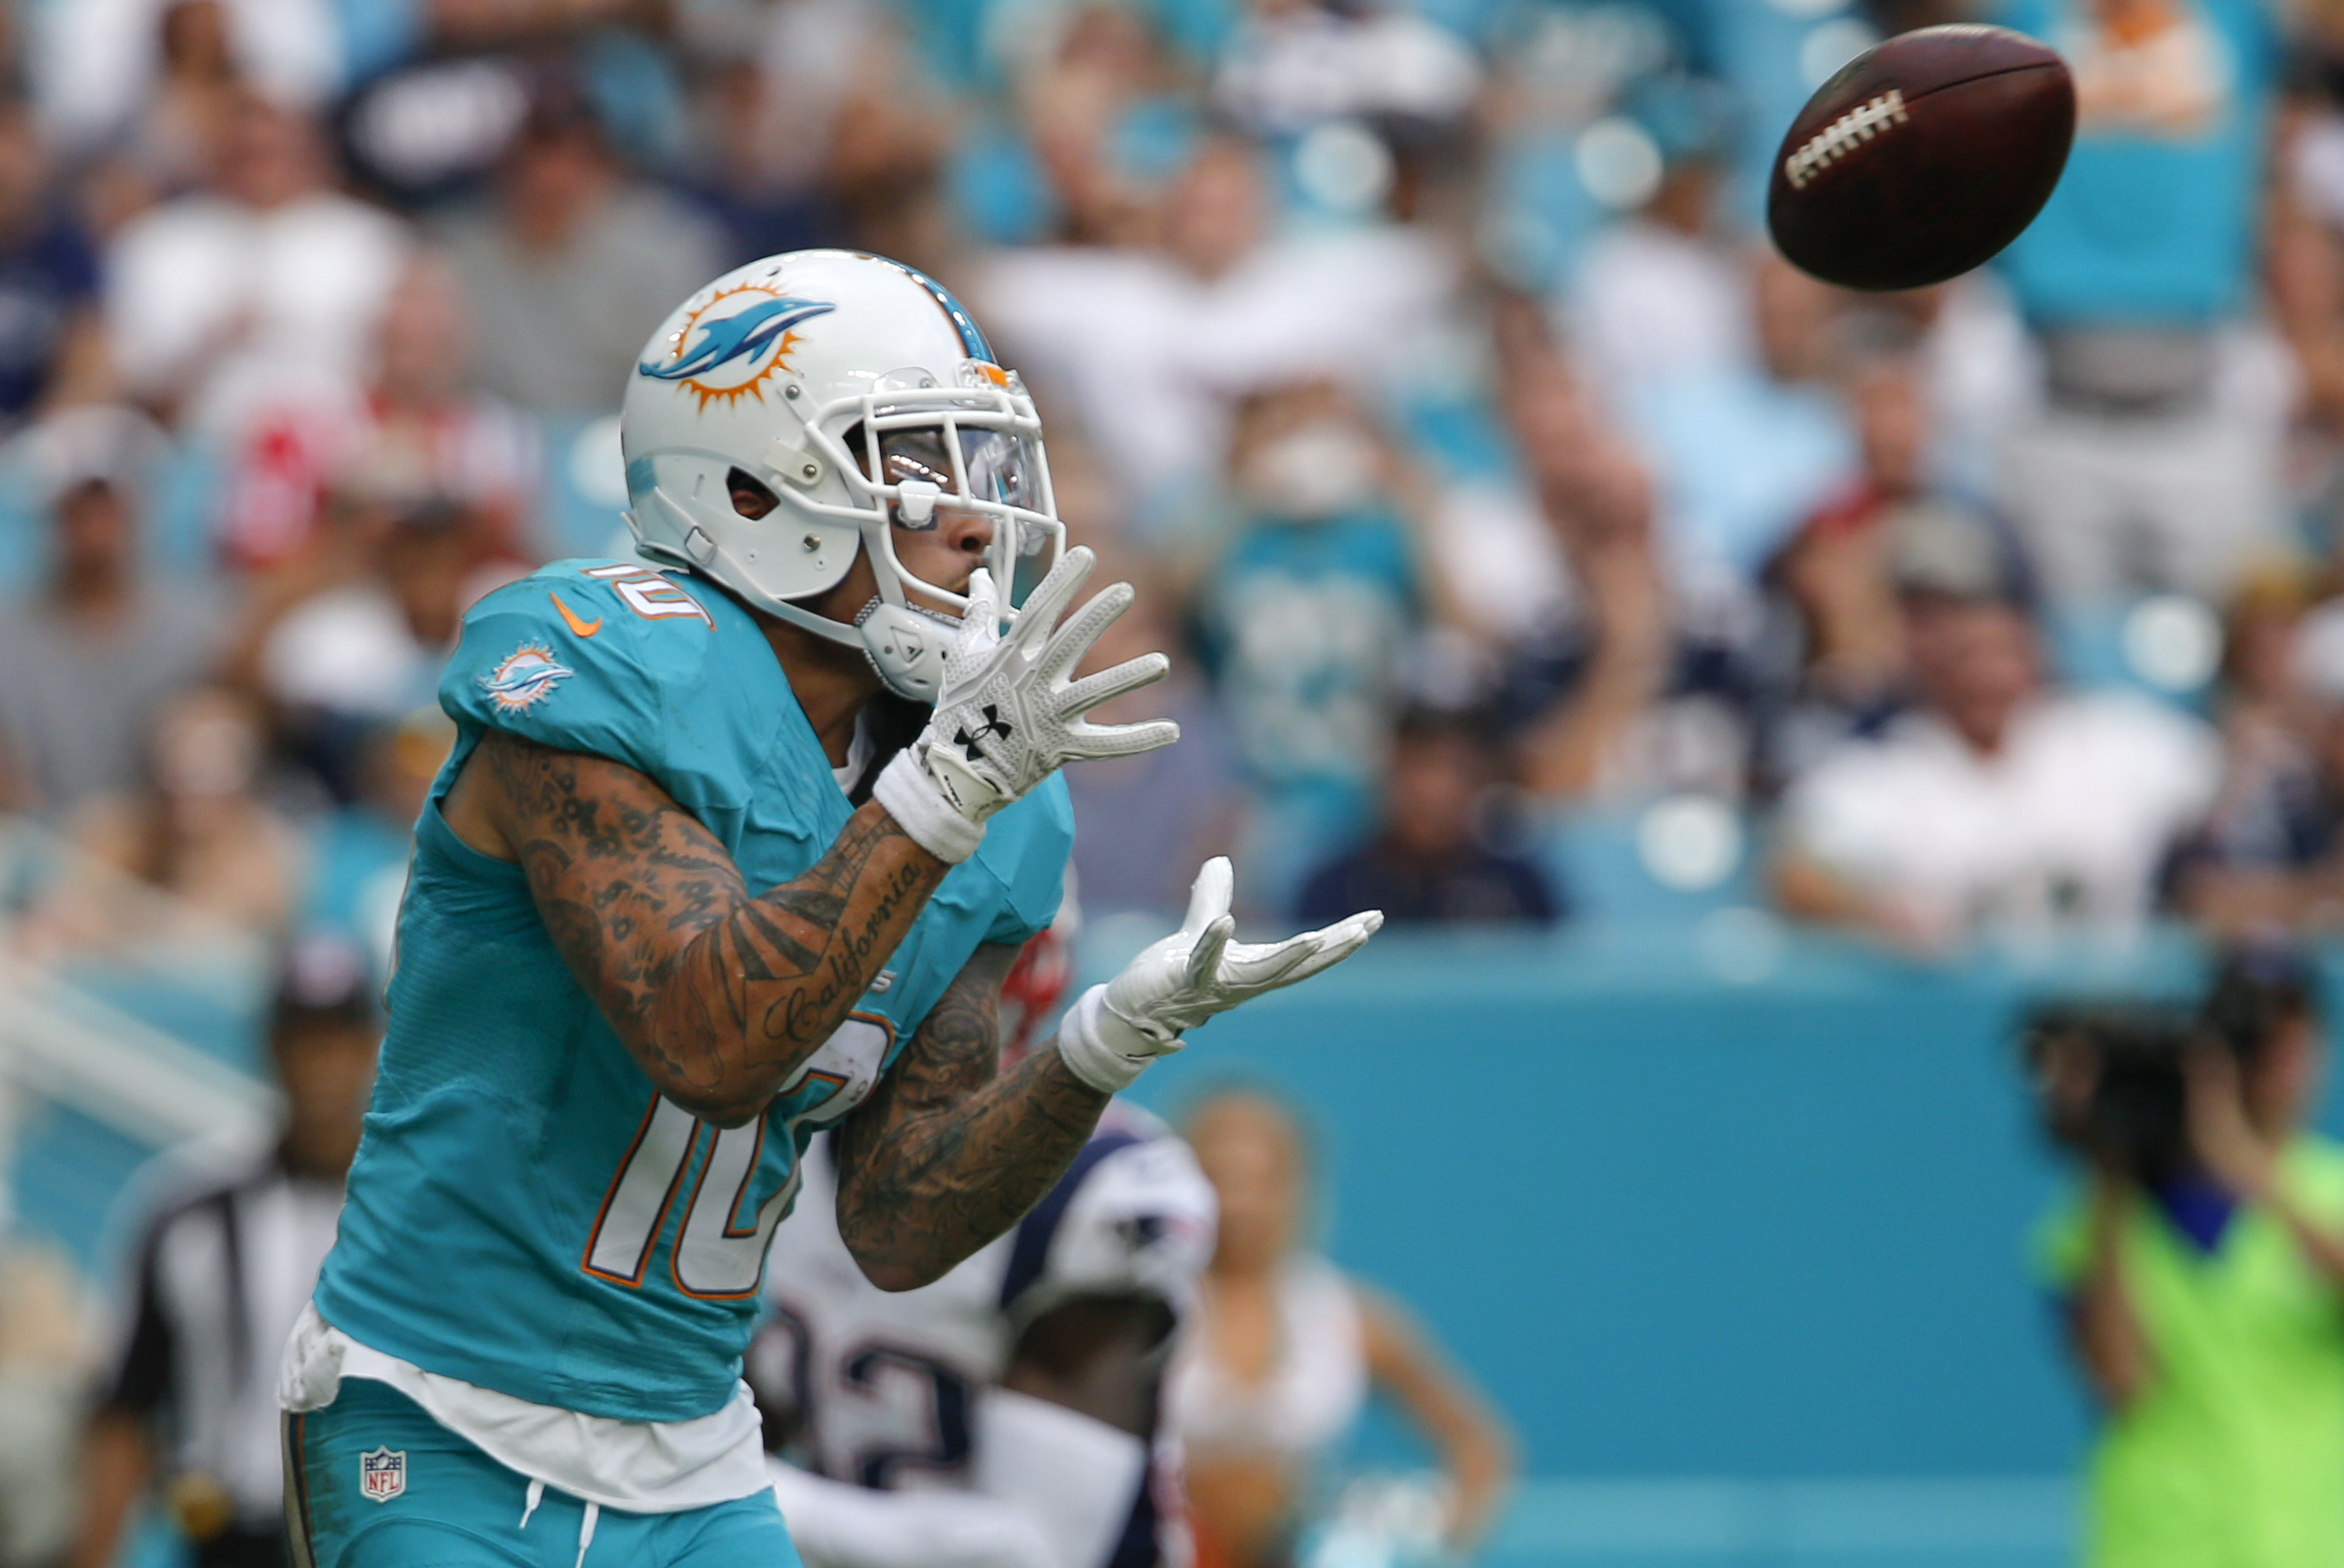 Jan 1, 2017; Miami Gardens, FL, USA; Miami Dolphins wide receiver Kenny Stills (10) catches a touchdown pass during the second half of an NFL football game against the New England Patriots at Hard Rock Stadium. The Patriots won 35-14. Mandatory Credit: Reinhold Matay-USA TODAY Sports